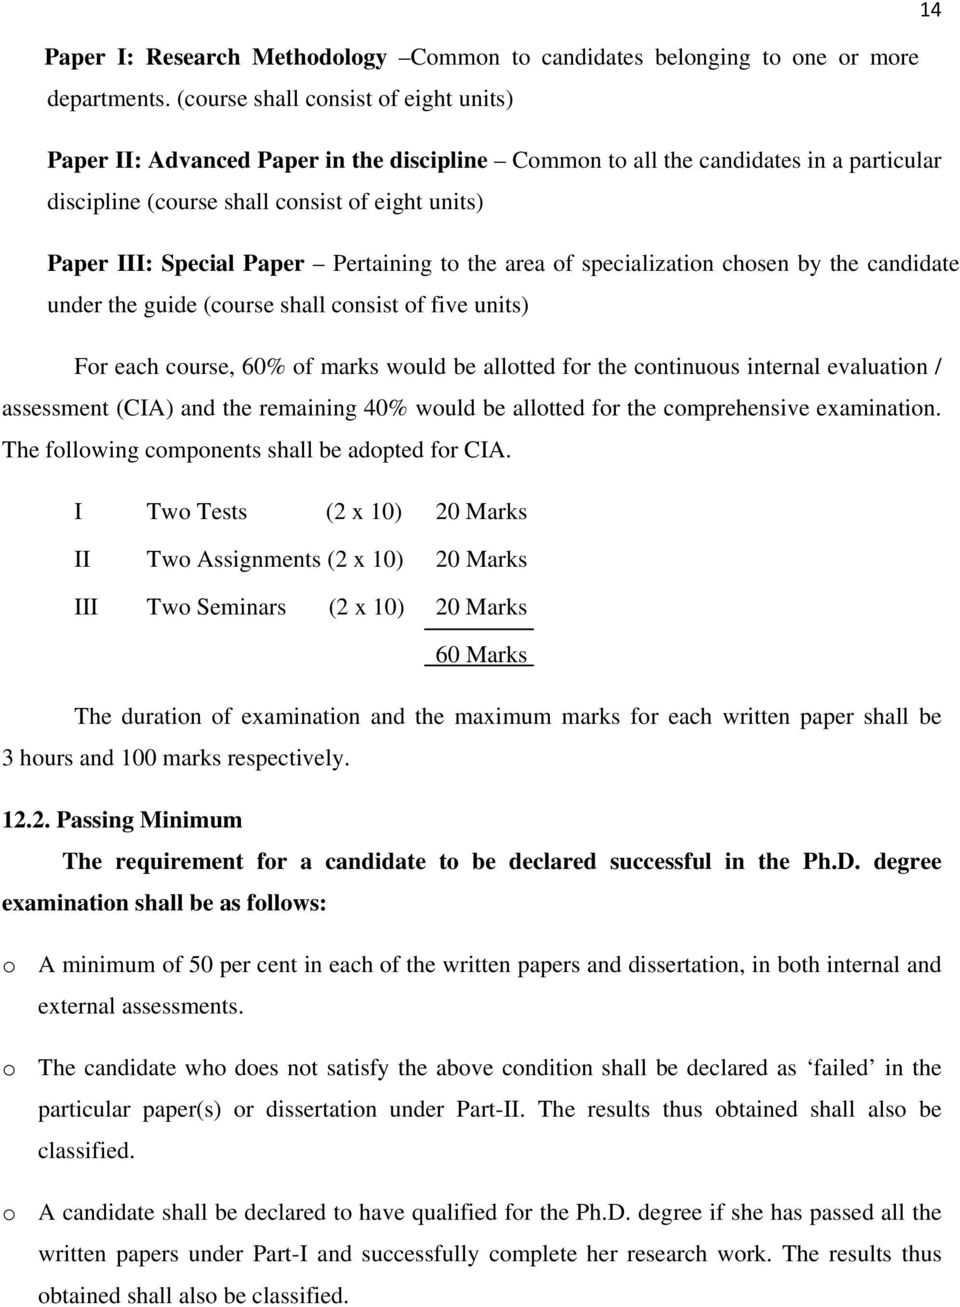 Pertaining to the area of specialization chosen by the candidate under the guide (course shall consist of five units) For each course, 60% of marks would be allotted for the continuous internal